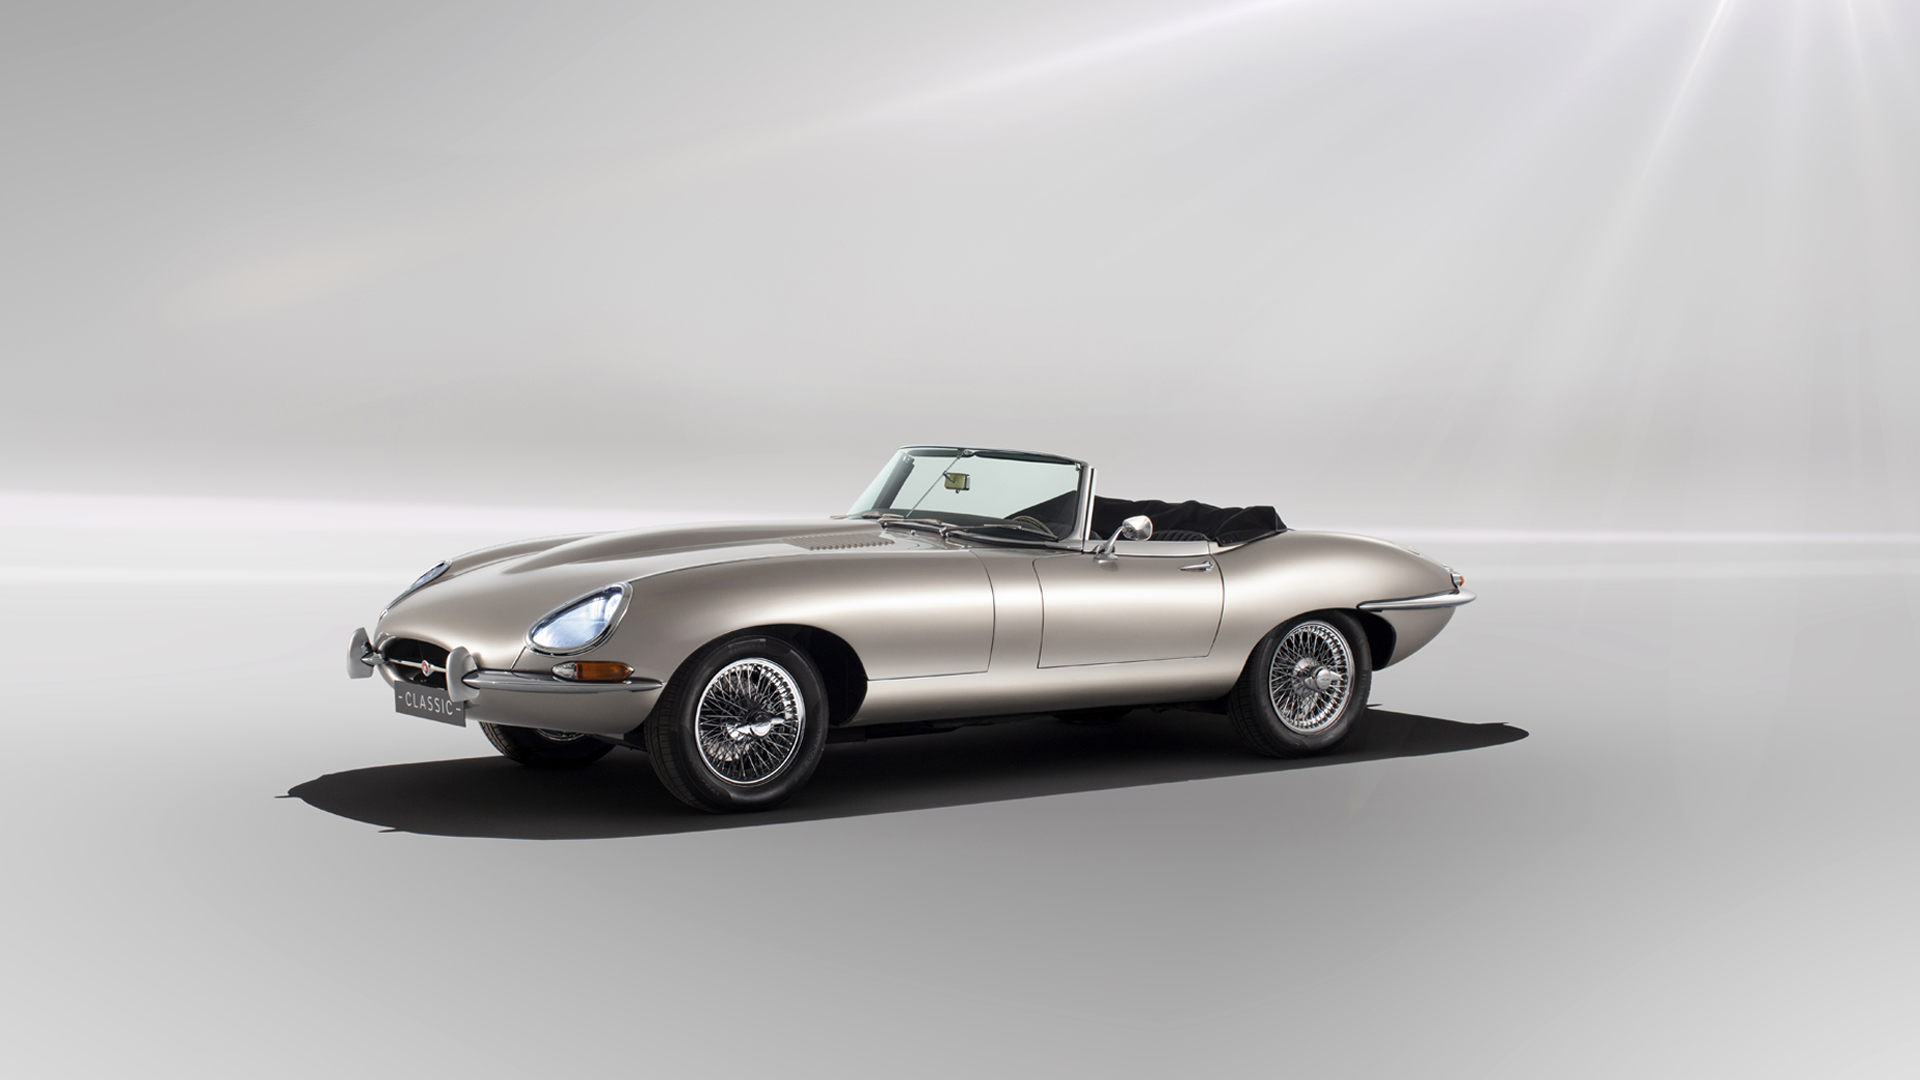 The all-electric Jaguar E-Type, which uses the same body style as the classic 1960s sports car, is seen in a promotion image released by the auto maker on Aug. 23, 2018.